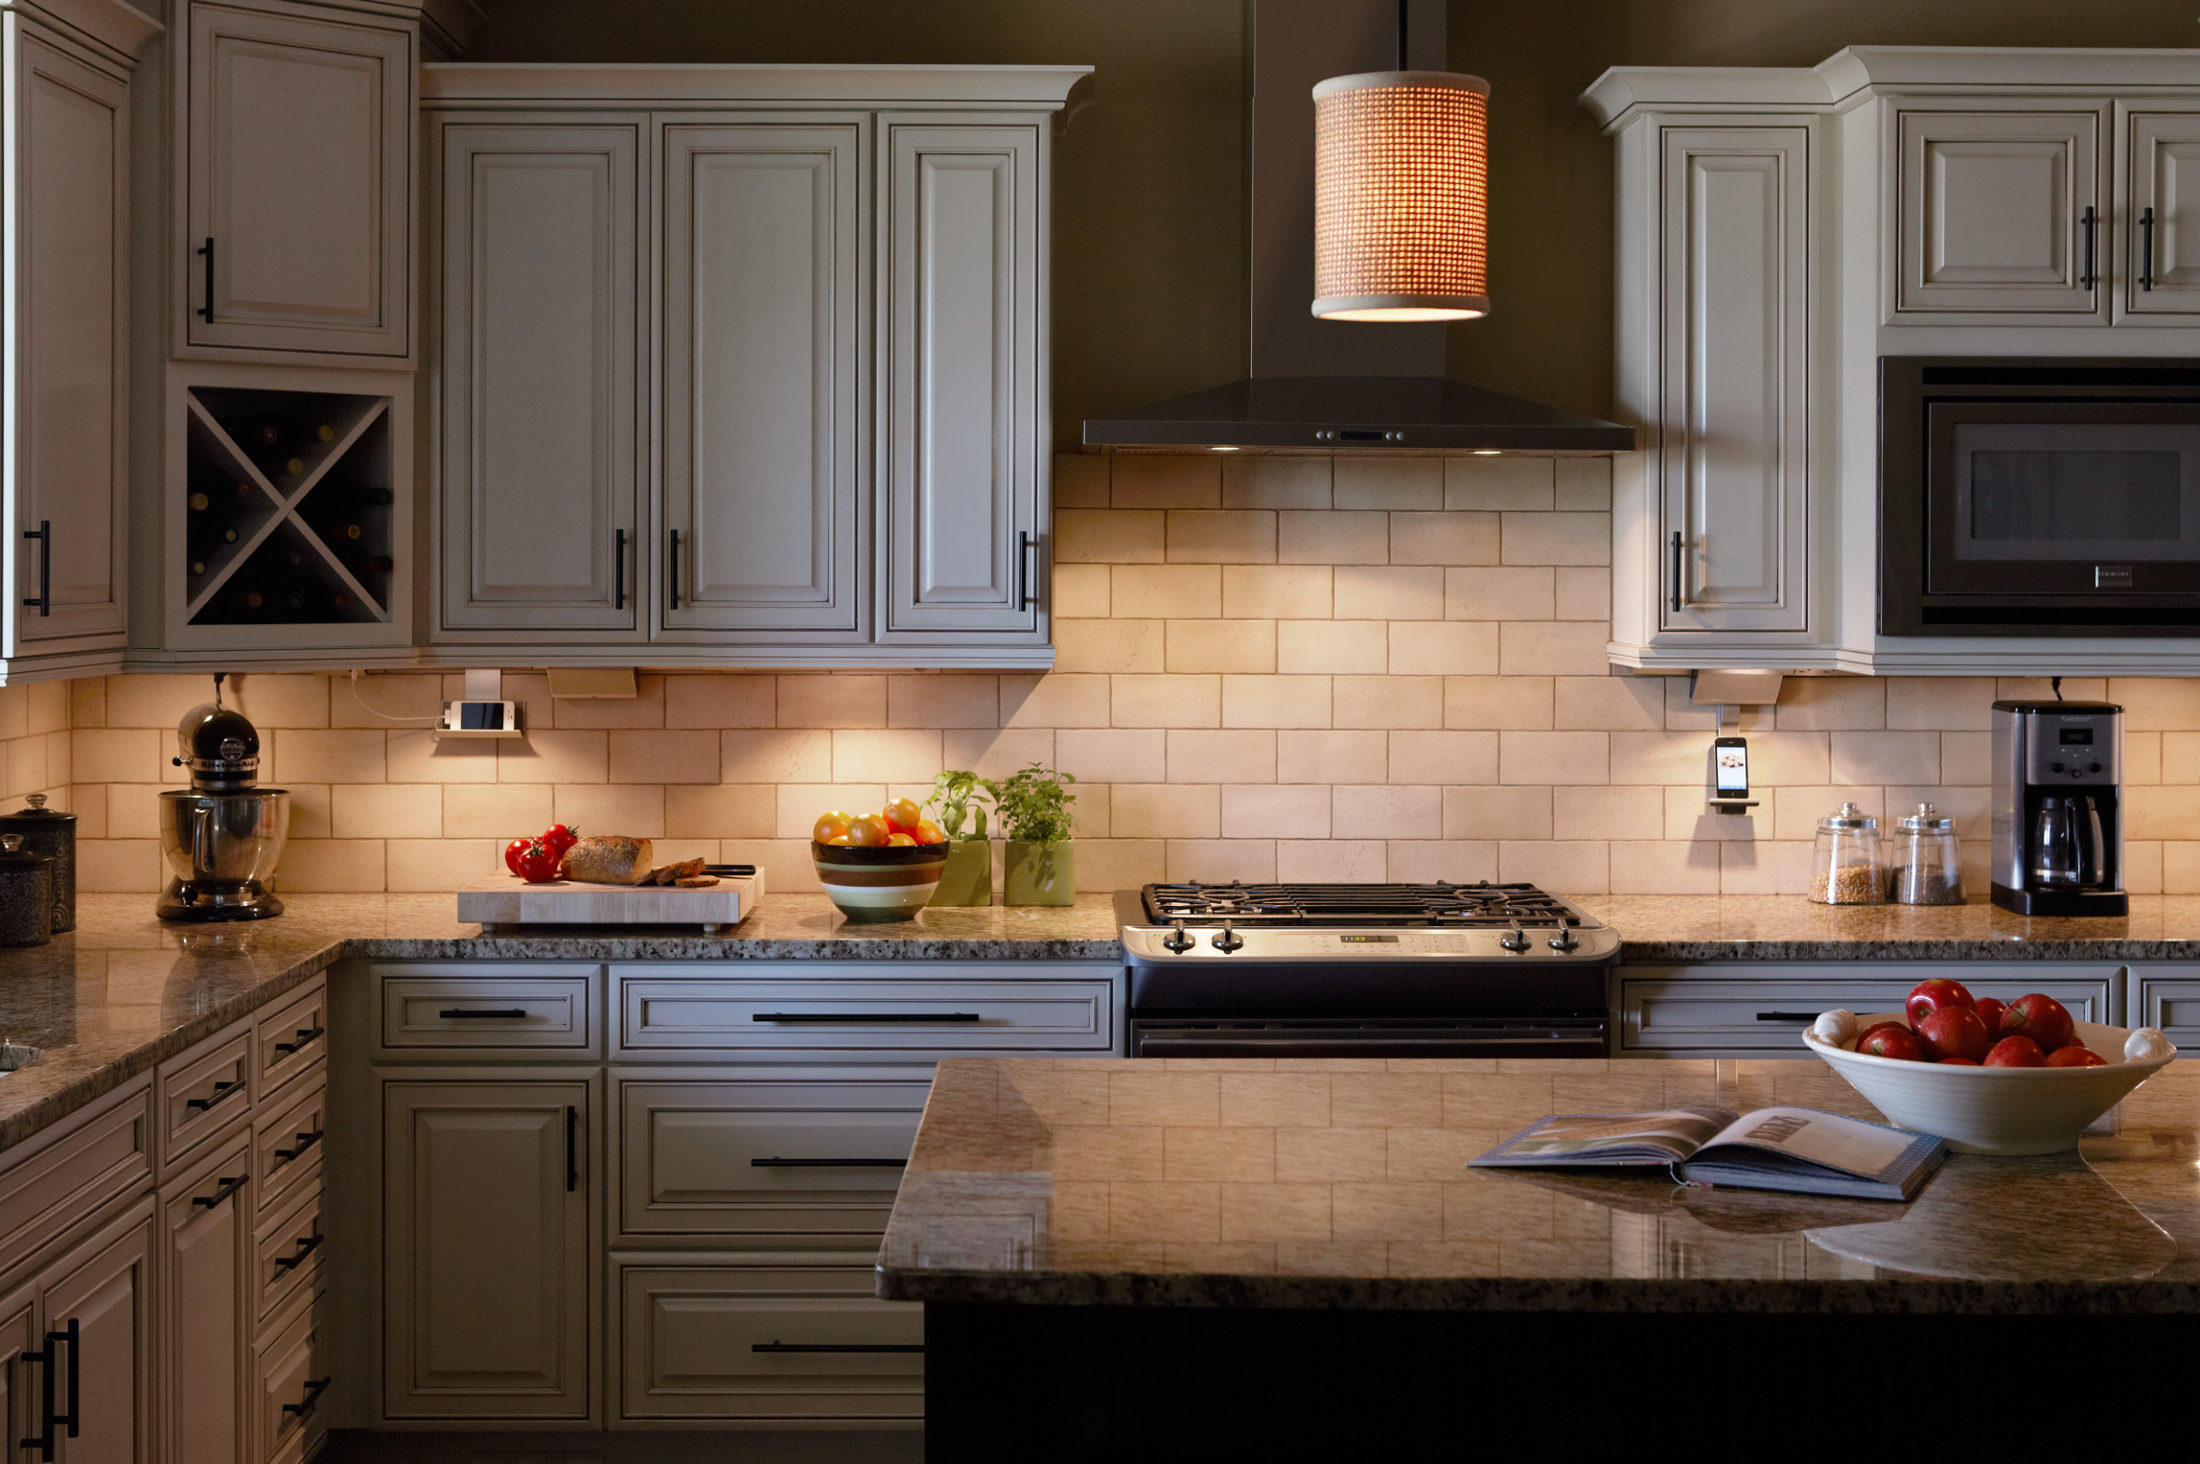 Kitchen Led Lights Led Kitchen Cabinet Lighting In Stock At Schillings